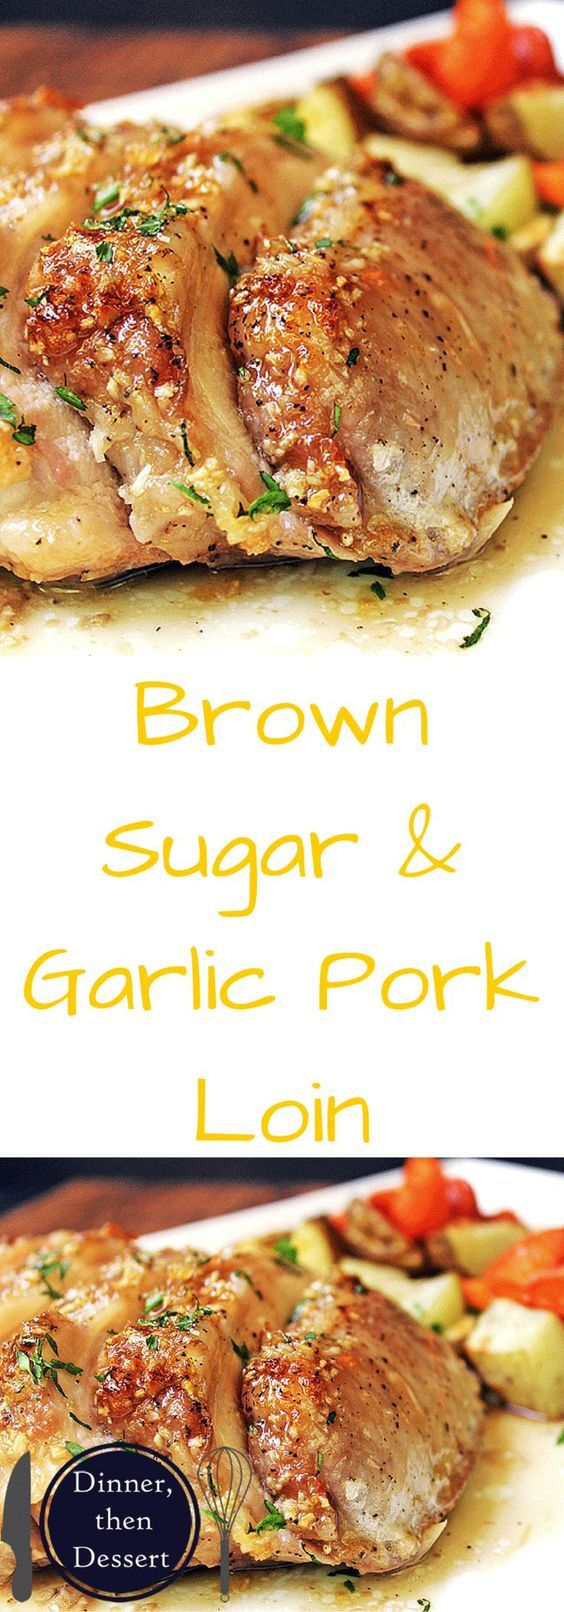 Brown Sugar Garlic Pork with Carrots & Potatoes - An easy meal, ready to roast in just a few minutes. Sticky and sweet with a punch of garlic, this pork loin is sure to be a huge hit with your family. Serve it up with some roasted carrots and potatoes on the side for a healthy balanced meal that is ready start to finish in 45 minutes!